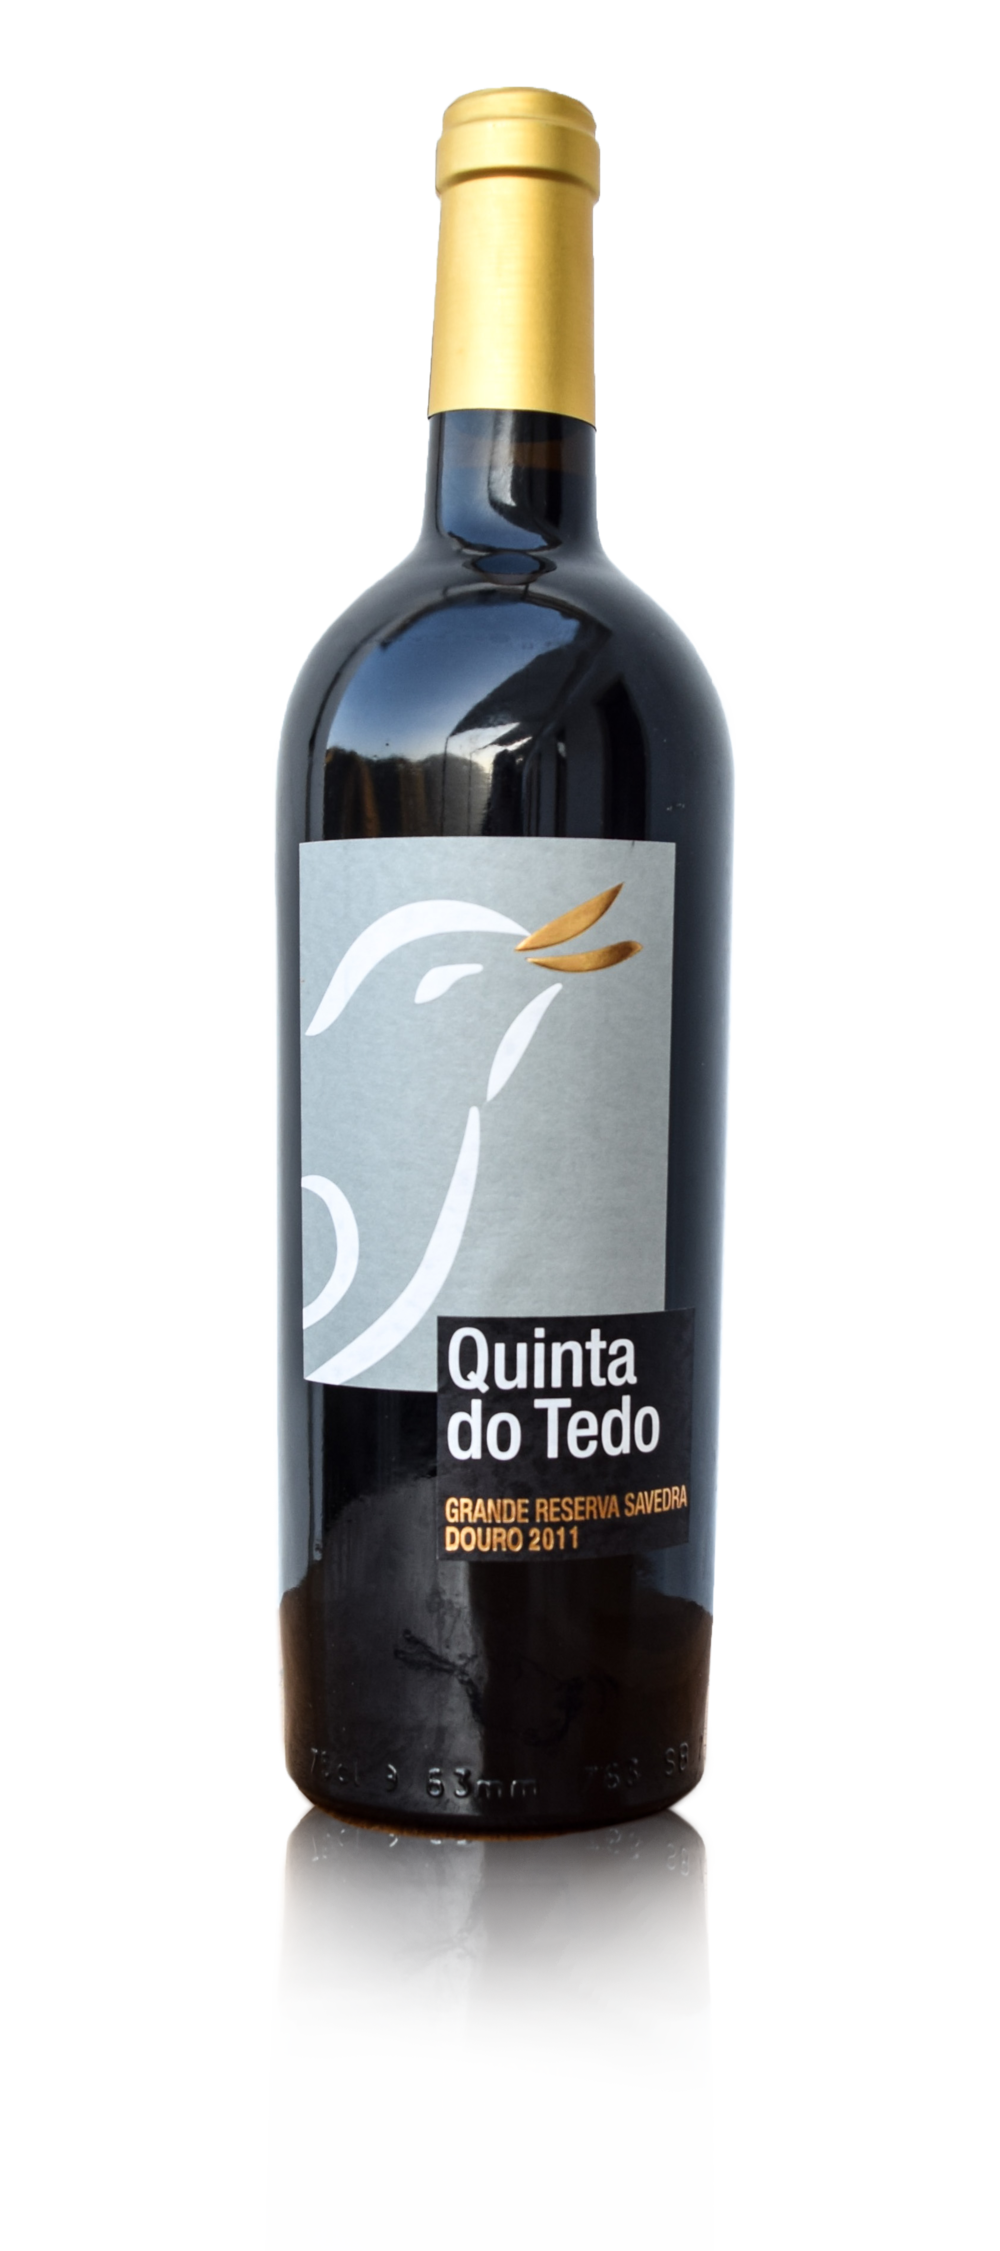 douro_savedra_wine_quinta_do_tedo